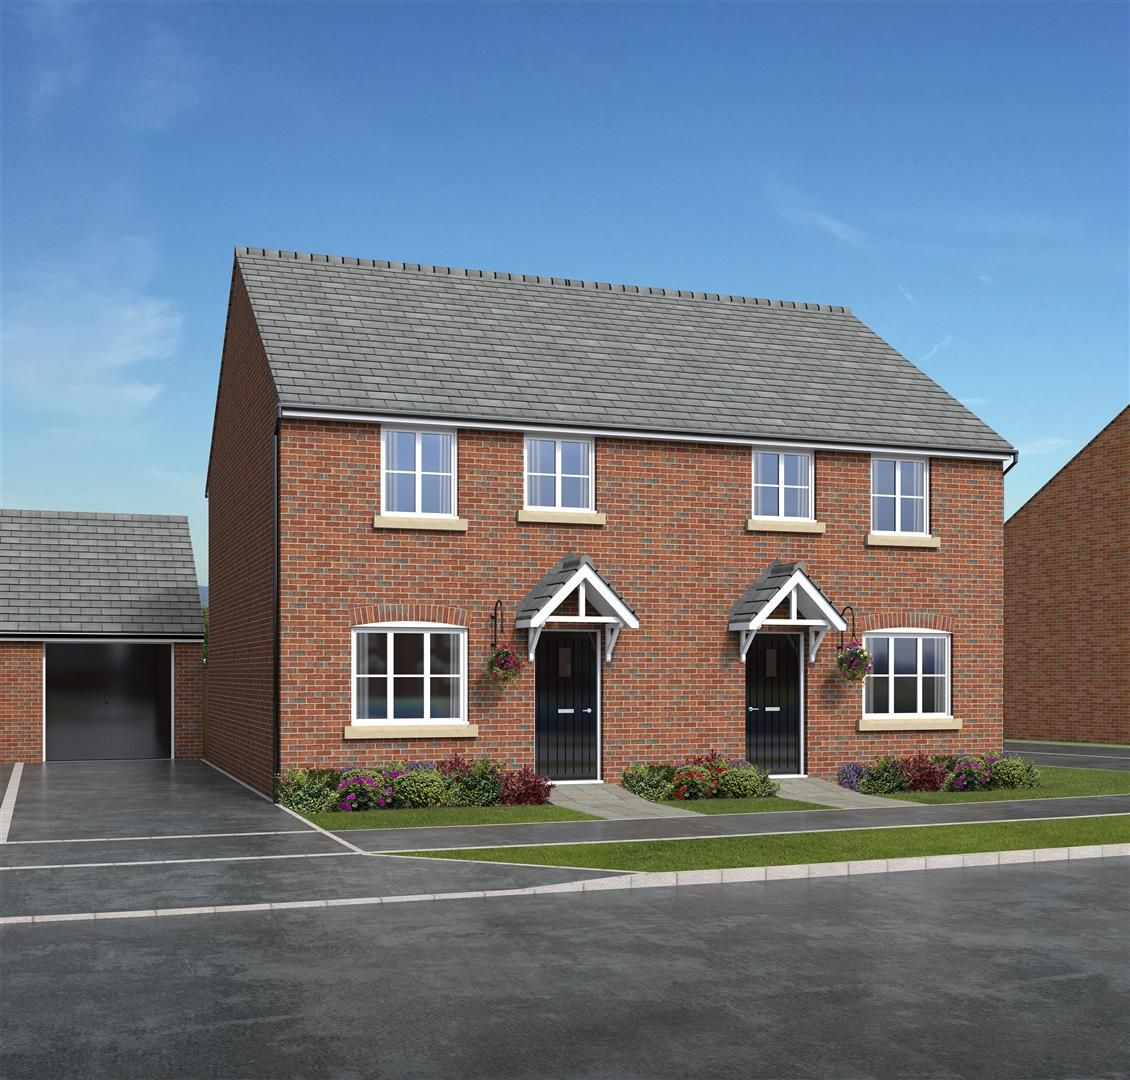 3 bed semi-detached for sale in Kingstone, HR2